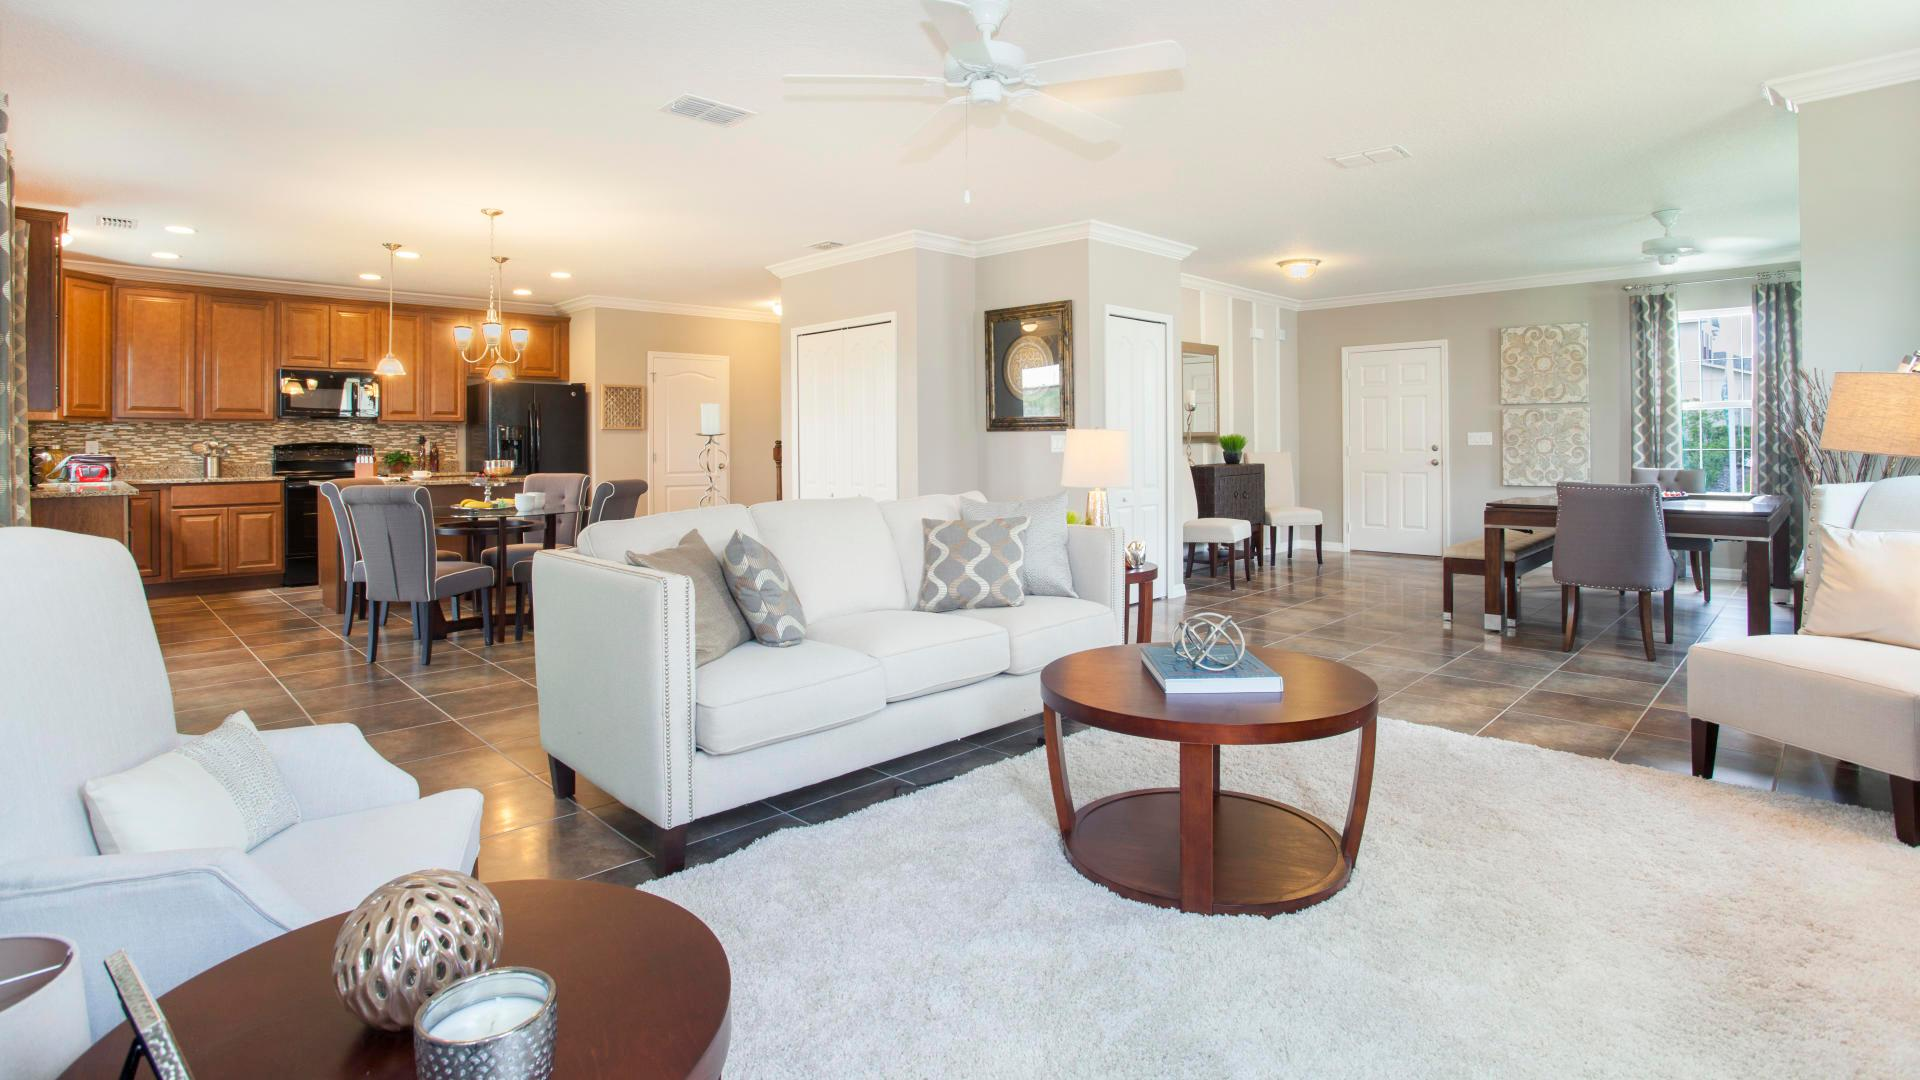 Living Area featured in the Rockford By Maronda Homes in Daytona Beach, FL